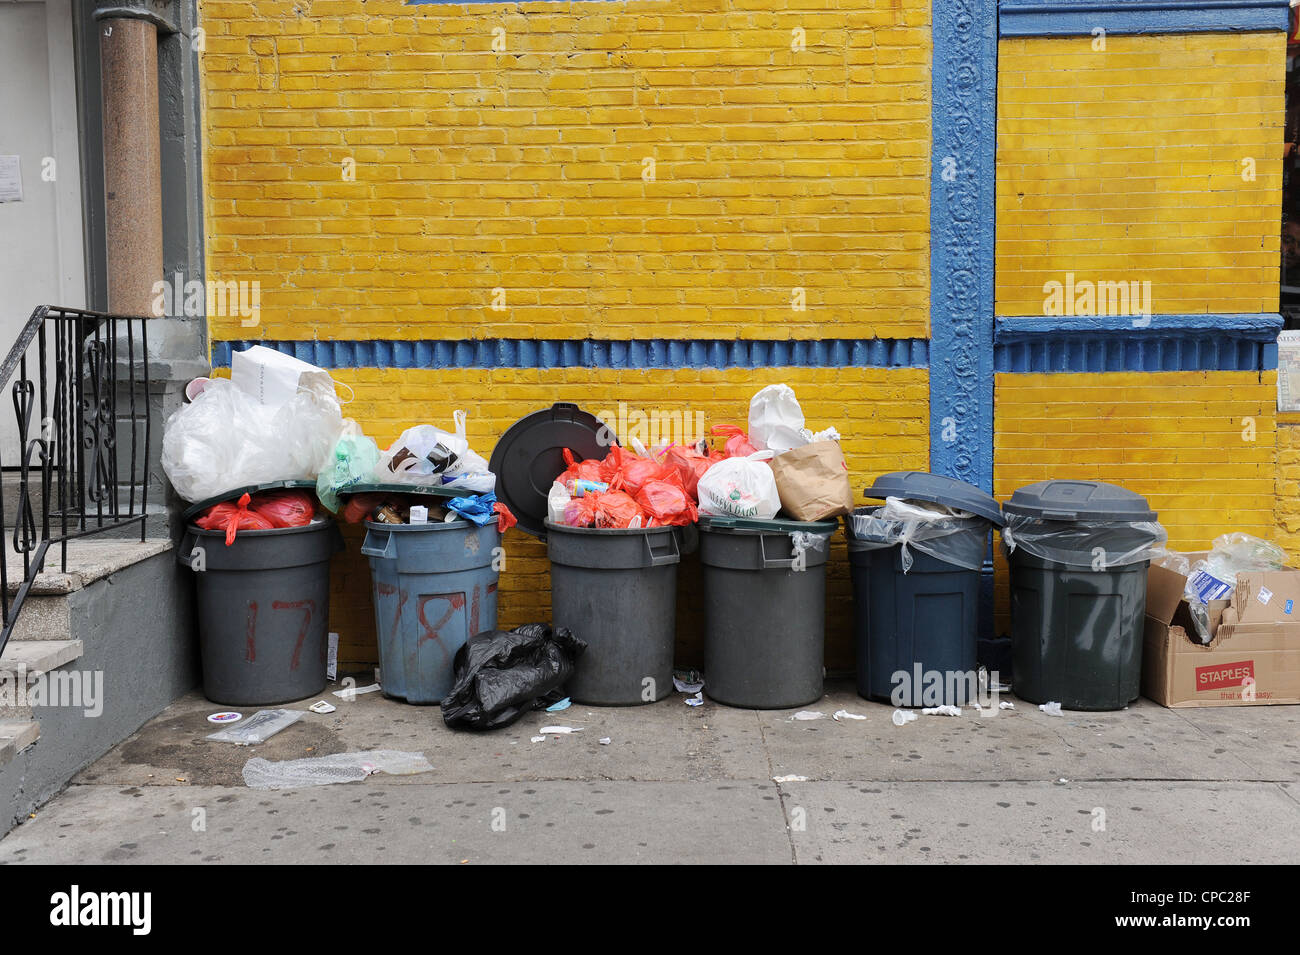 Rubbish Bins outside a restaurant Soho, New York - Stock Image